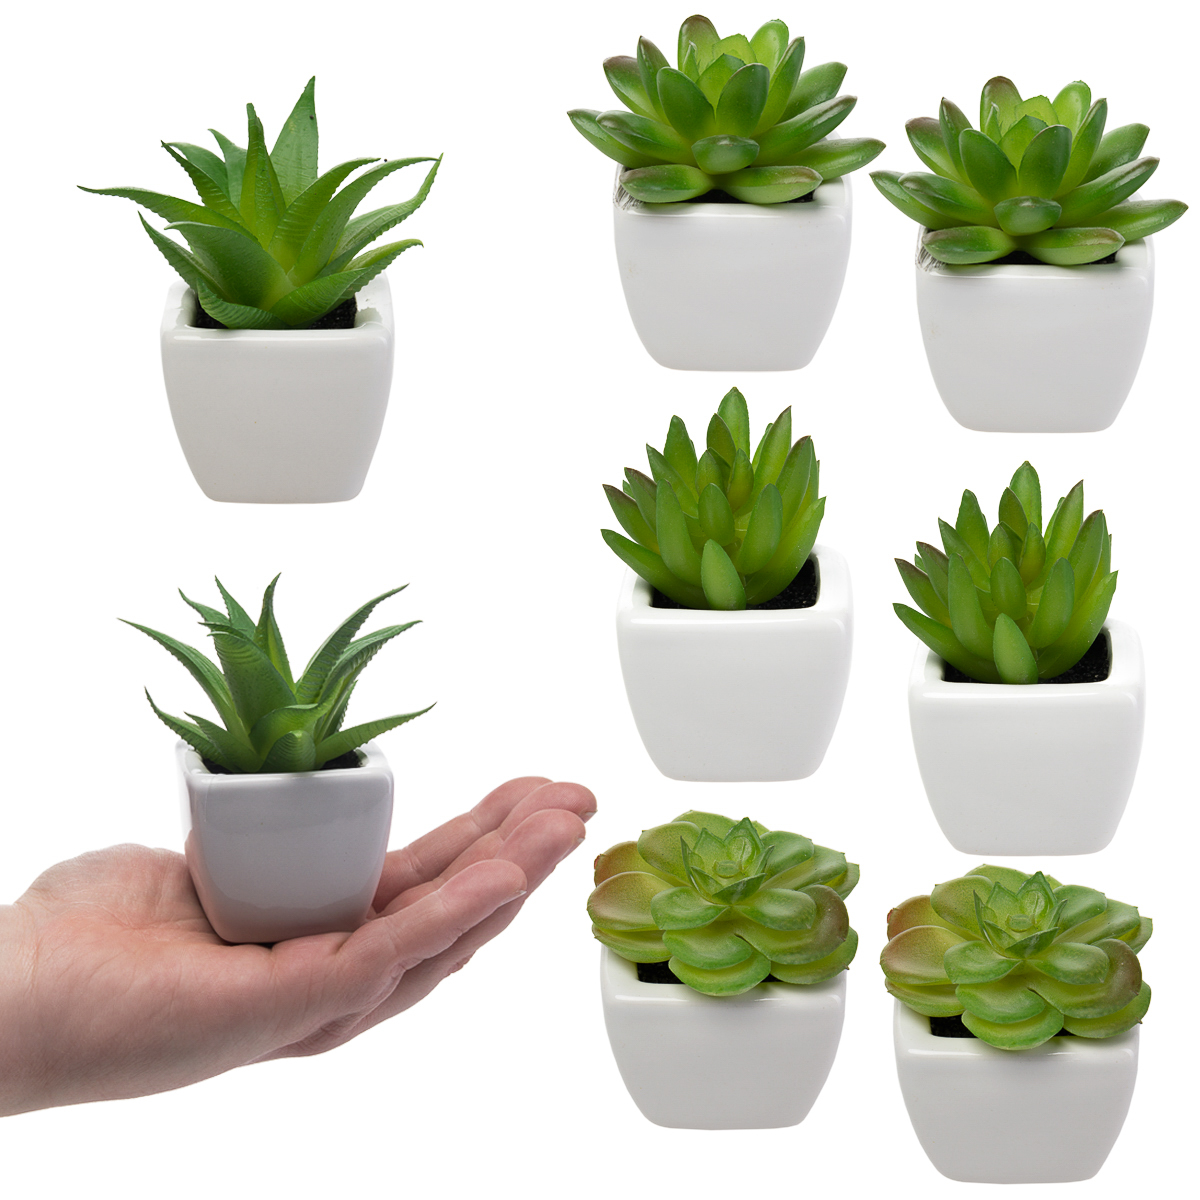 8 Fake Succulent Plants Small Artificial Succulents With White